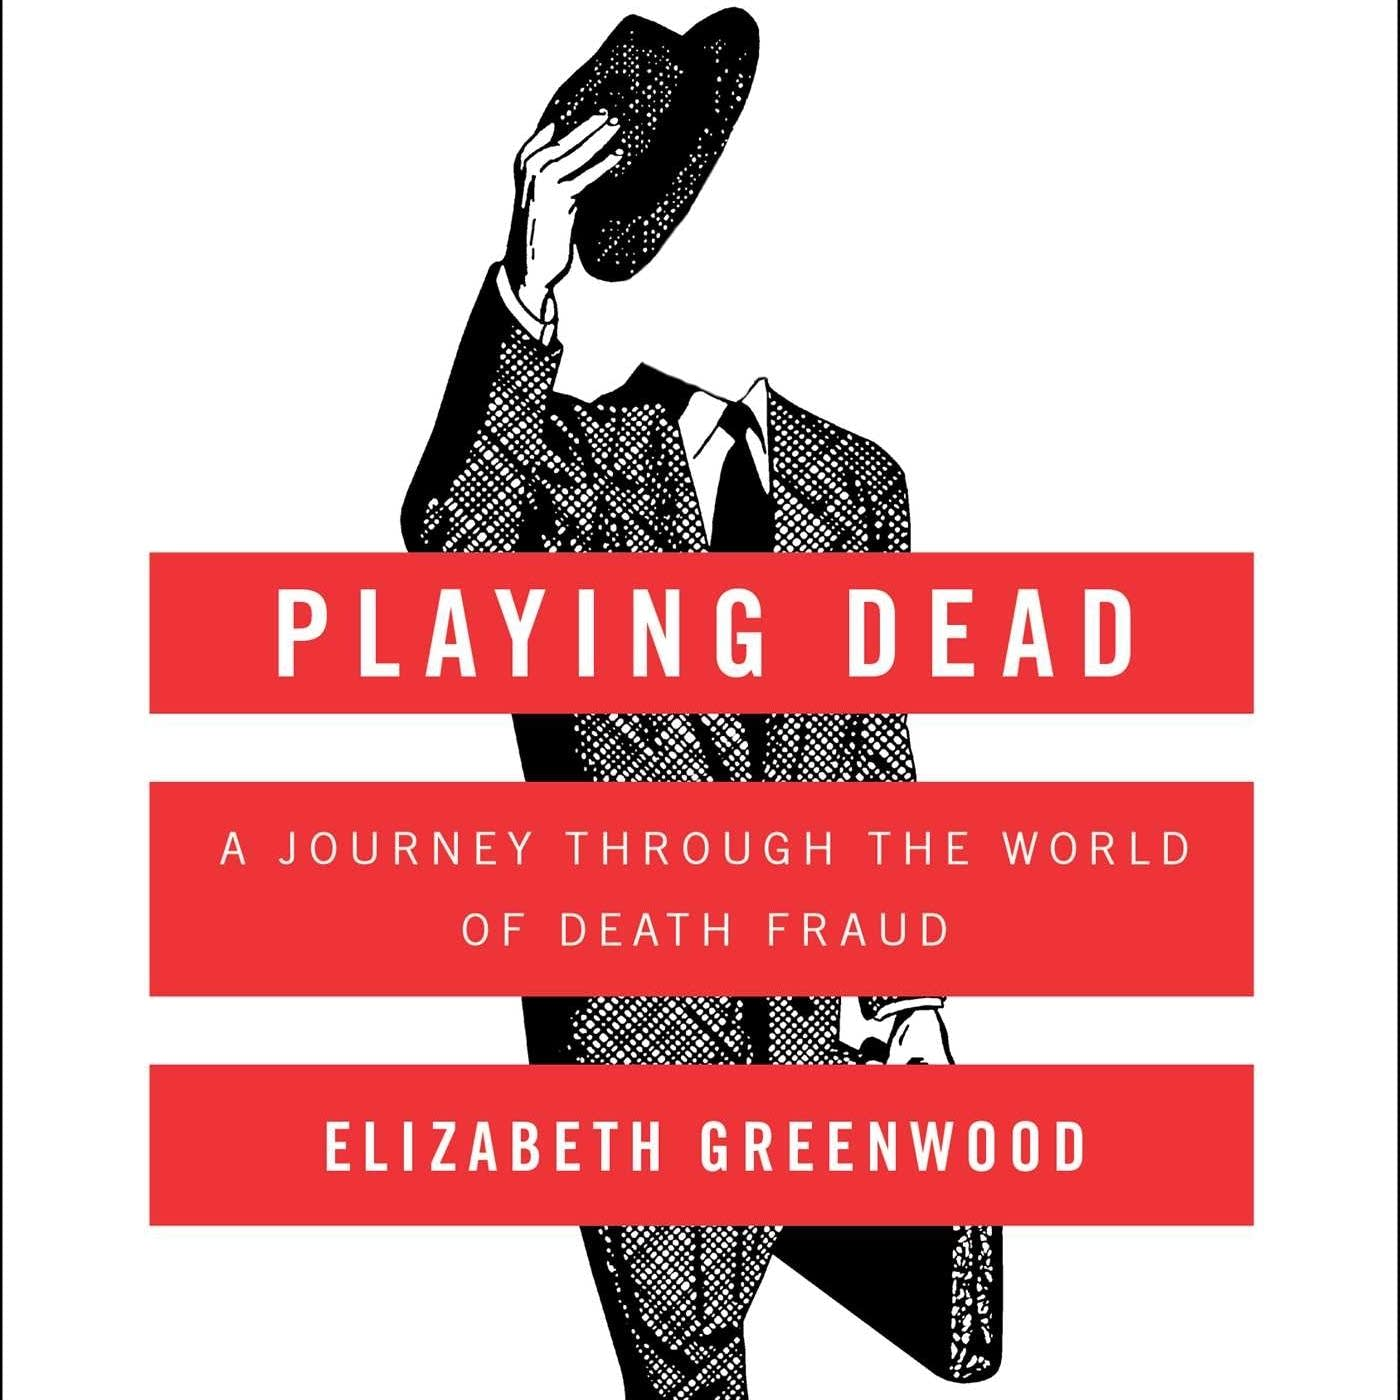 'Playing Dead' by Elizabeth Greenwood